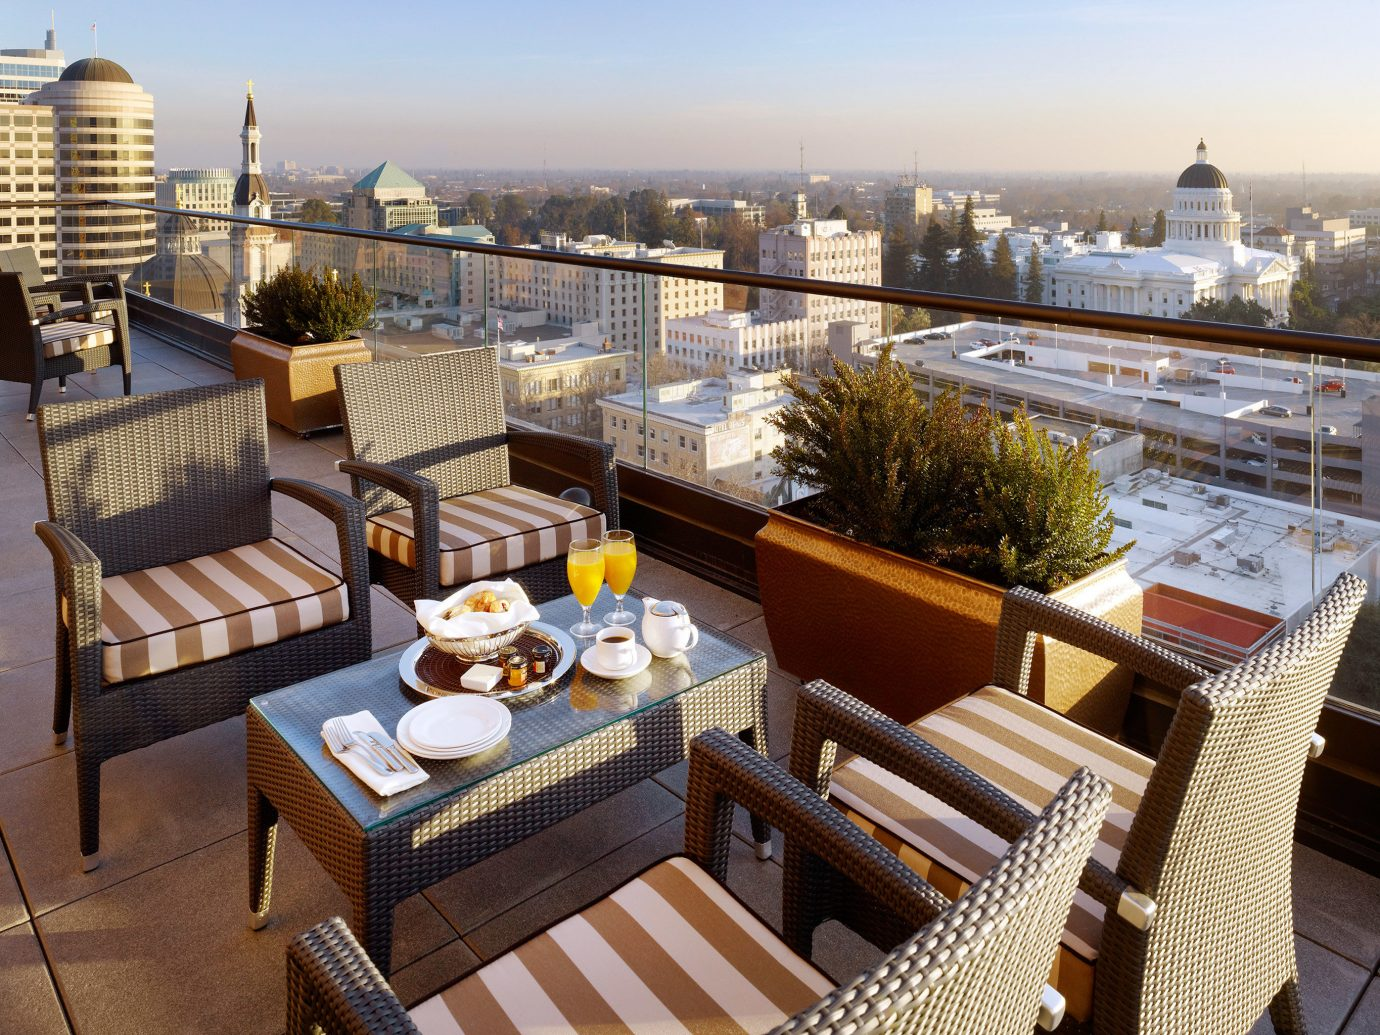 Dining Drink Eat Hip Historic Influencers + Tastemakers Living Lounge Modern Rooftop Scenic views sky table property condominium Balcony outdoor structure real estate estate overlooking